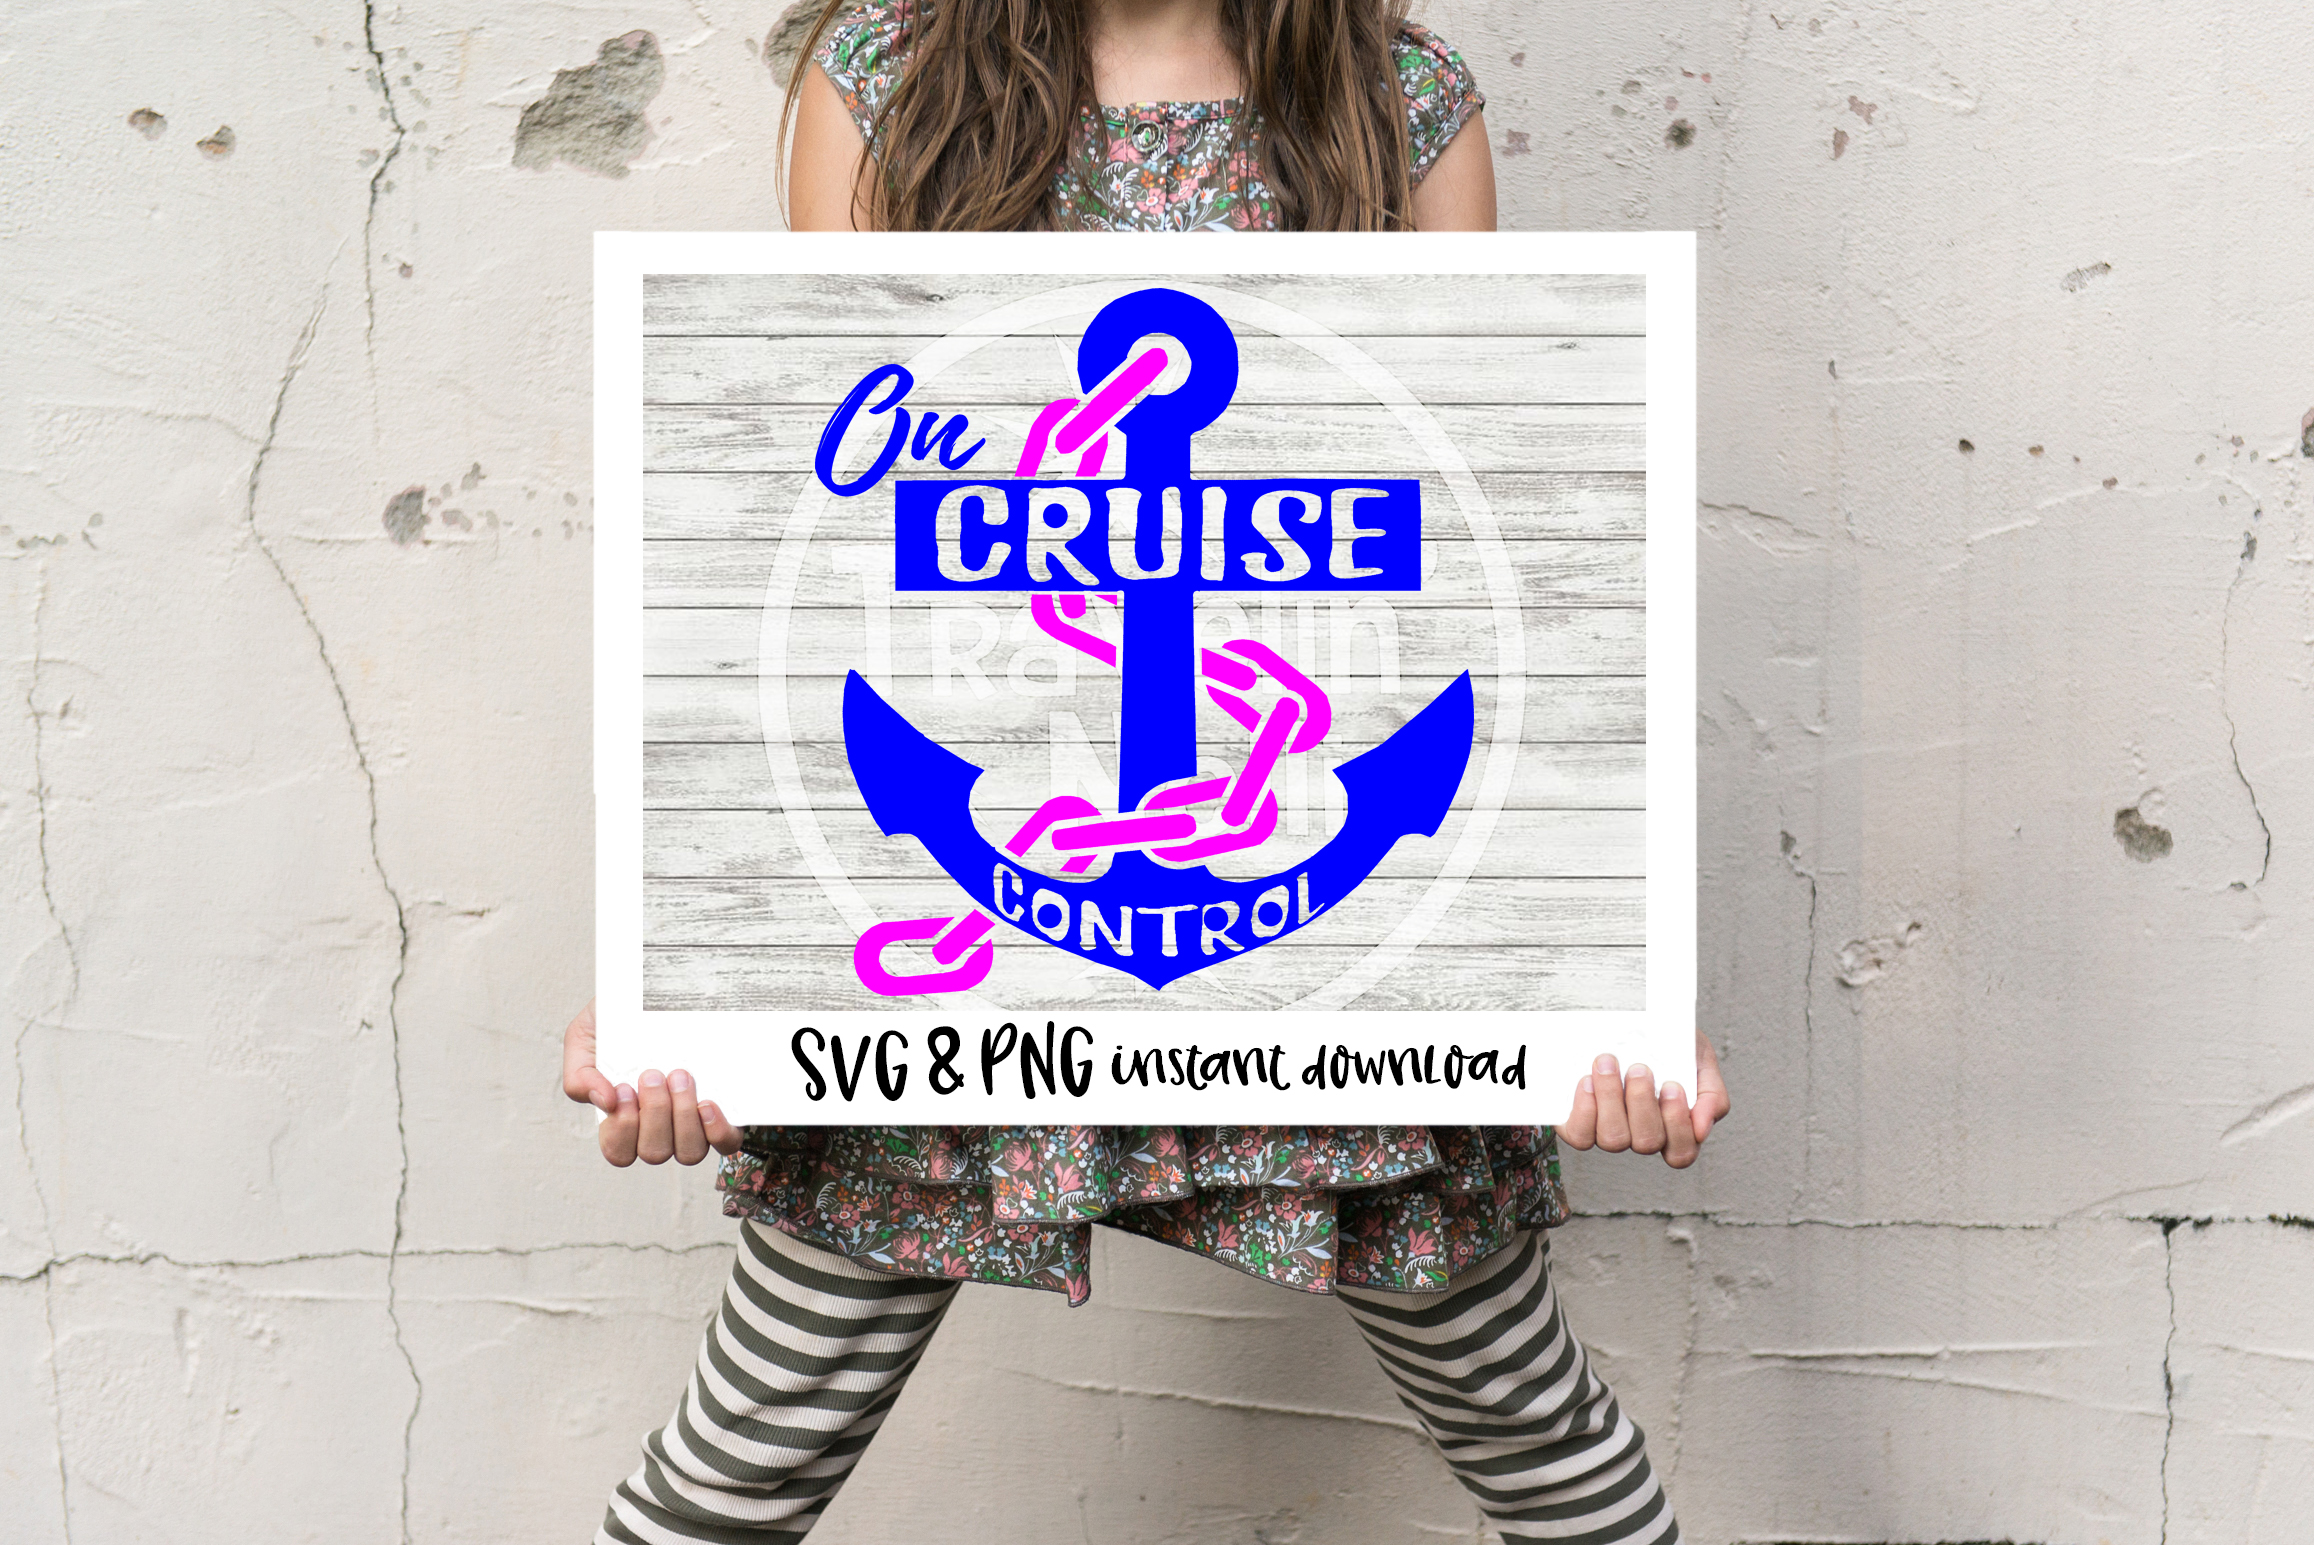 Cruise SVG, On Cruise Control SVG, Cruise Quote, Anchor svg, Cruise Vacation svg, Cruise ship svg, Vacation svg, Funny Cruise svg, Svg for Cricut example image 1